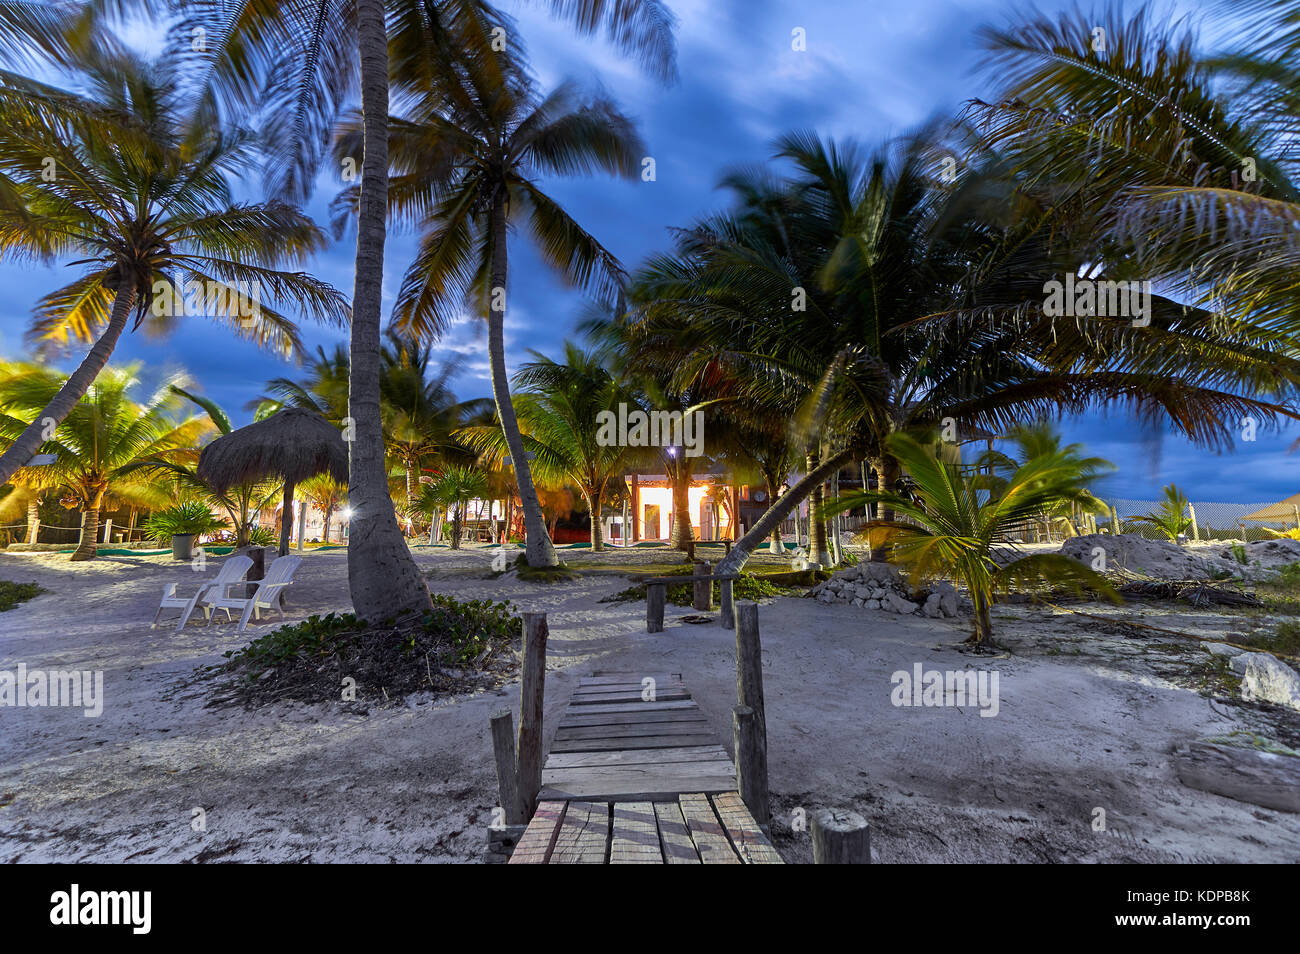 The beach at Mahahual, Mexico during the blue hour - Stock Image